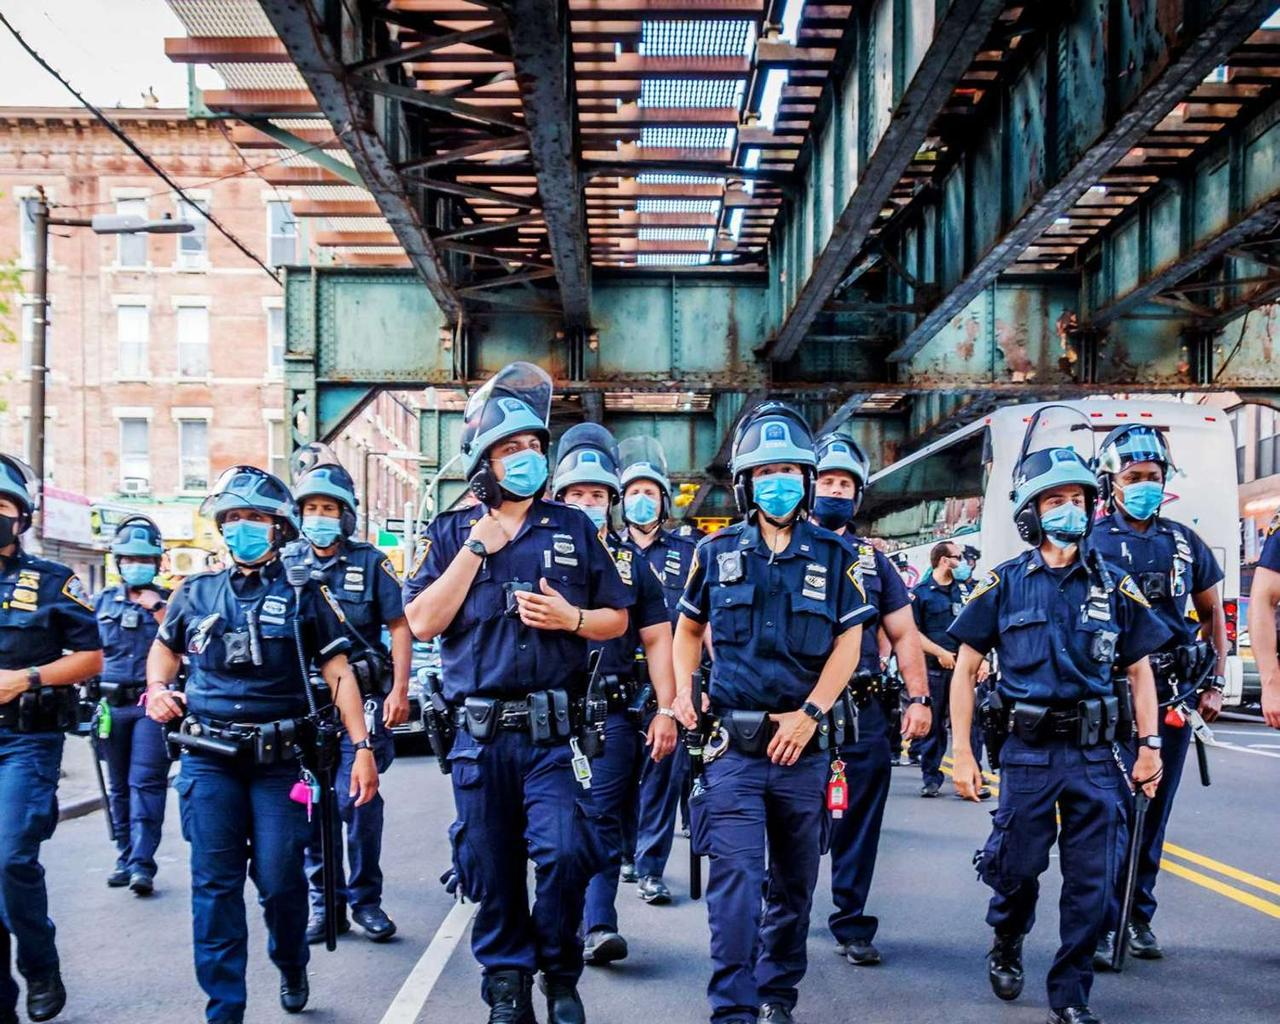 NYPD police are no longer protected in public courts after city council passed police reform law